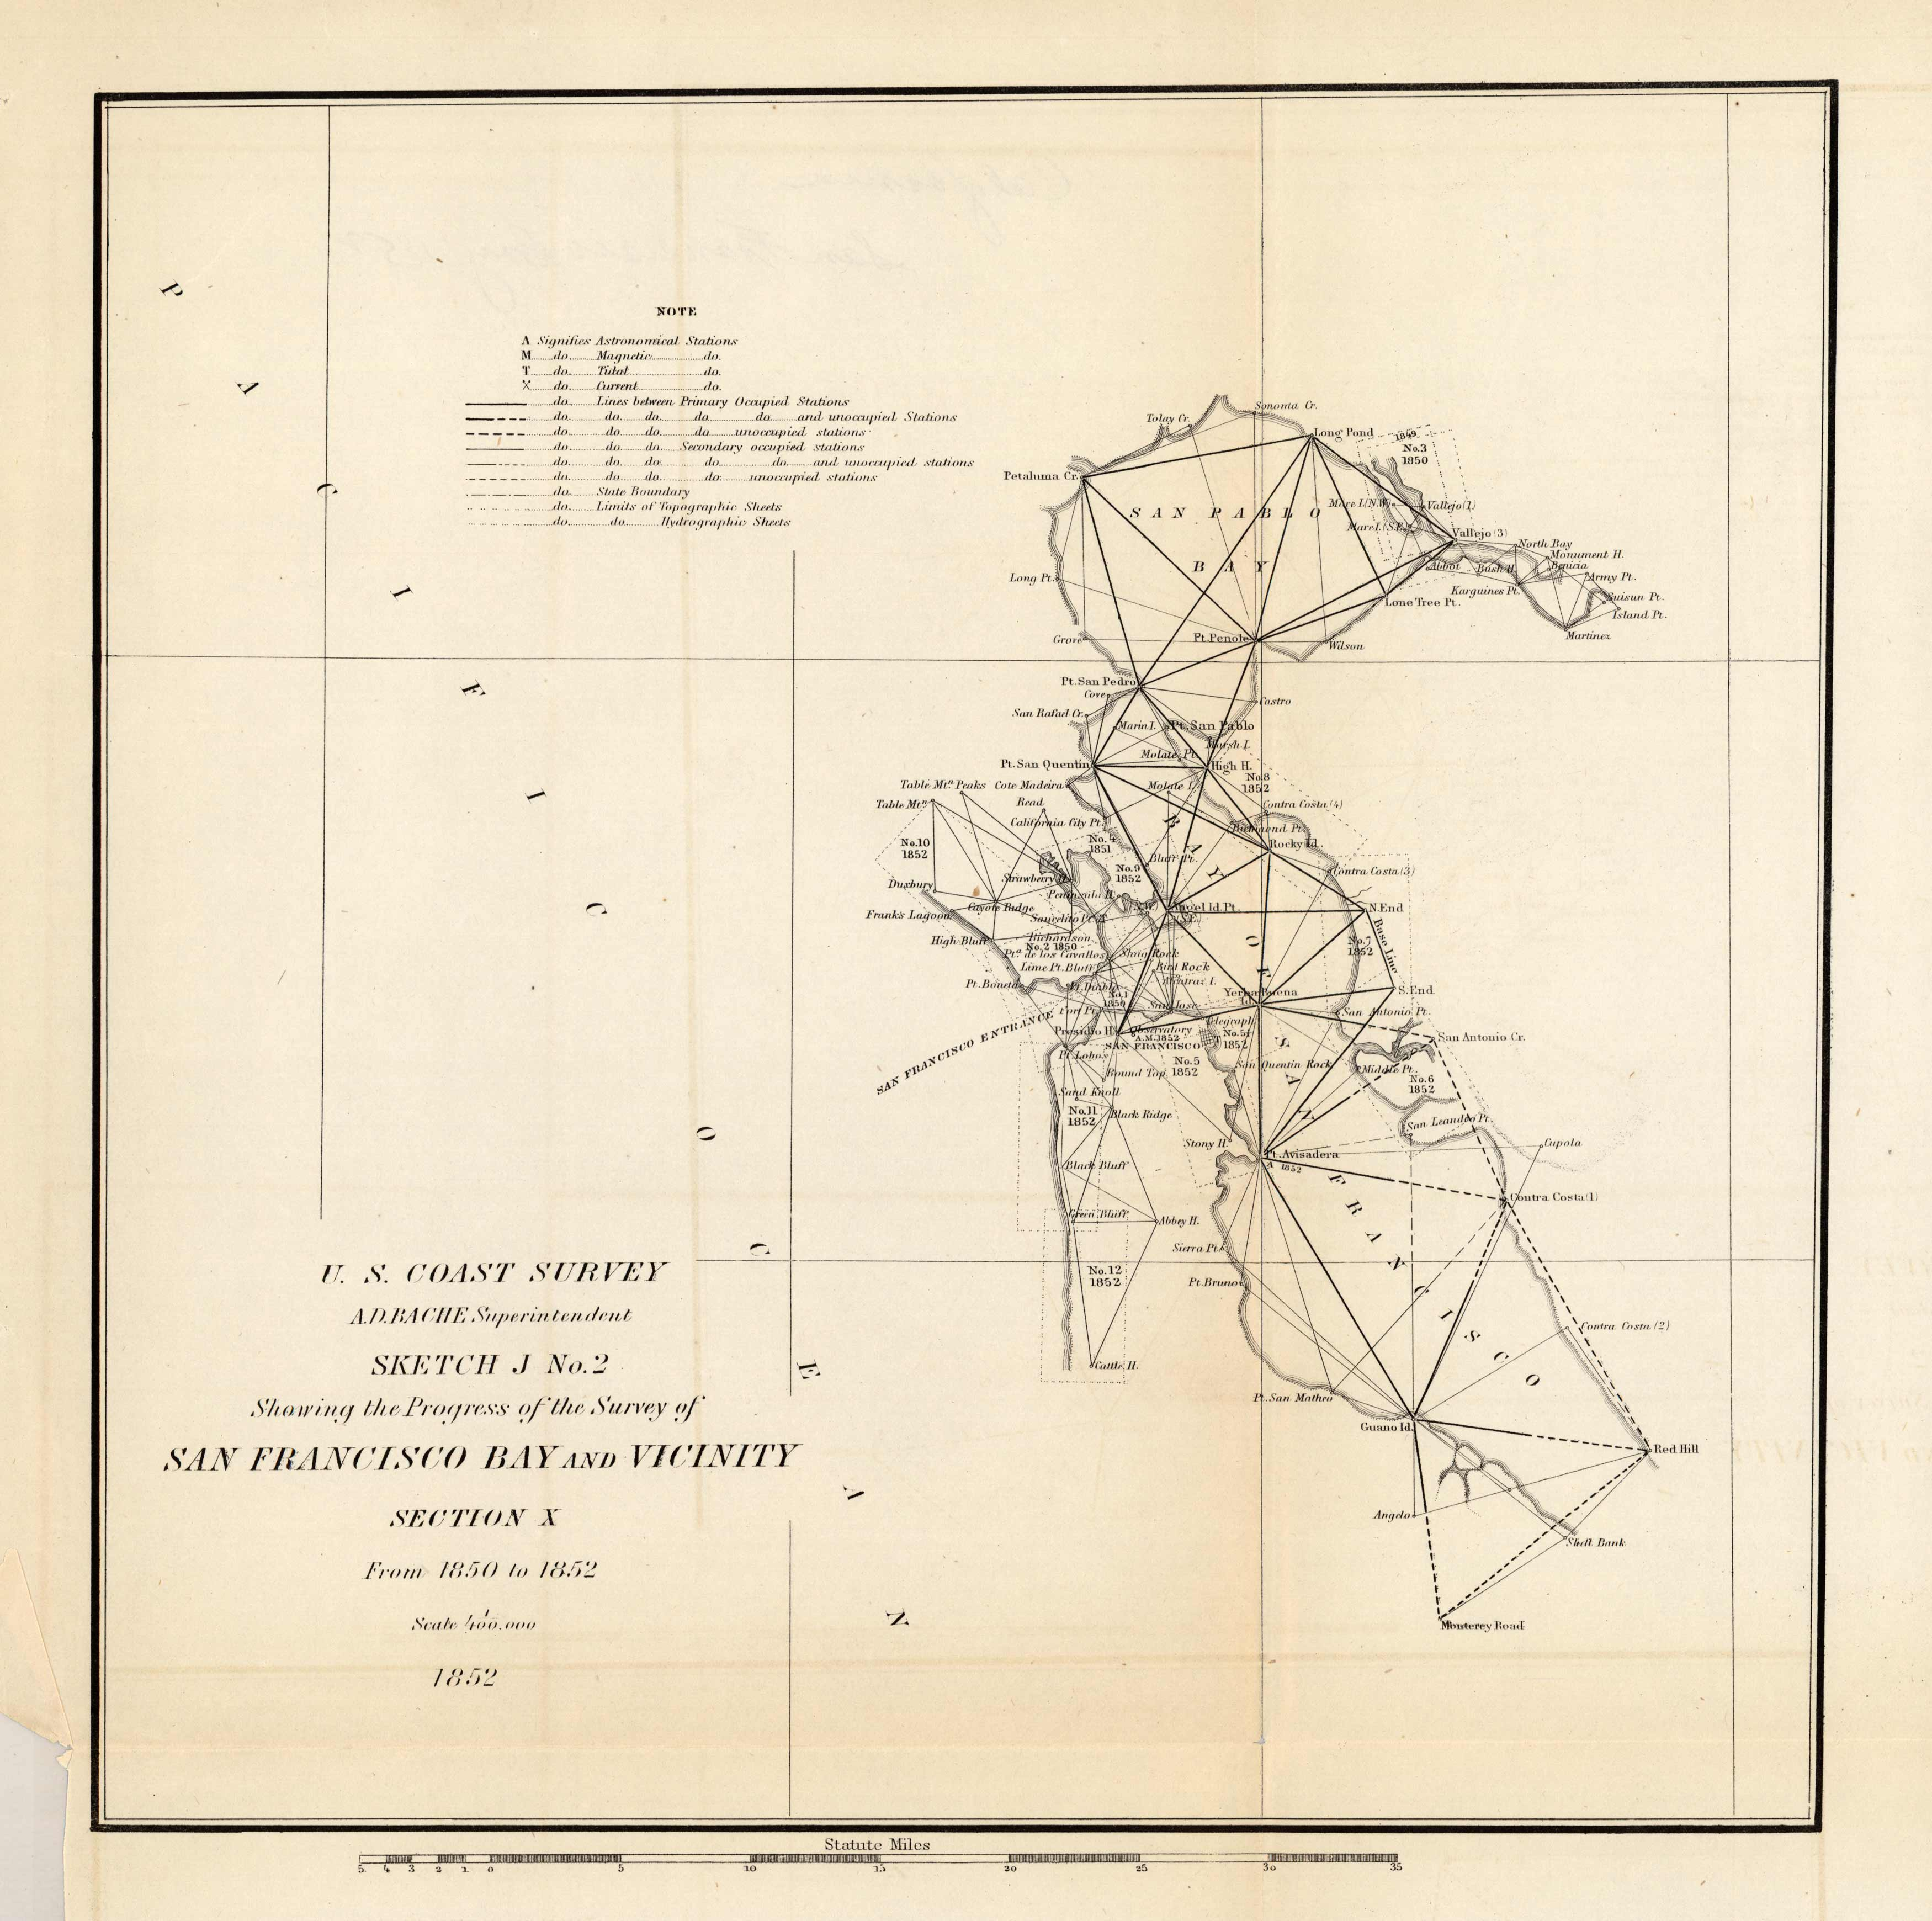 Antique Coastal Survey-San Francisco Bay and Vicinity